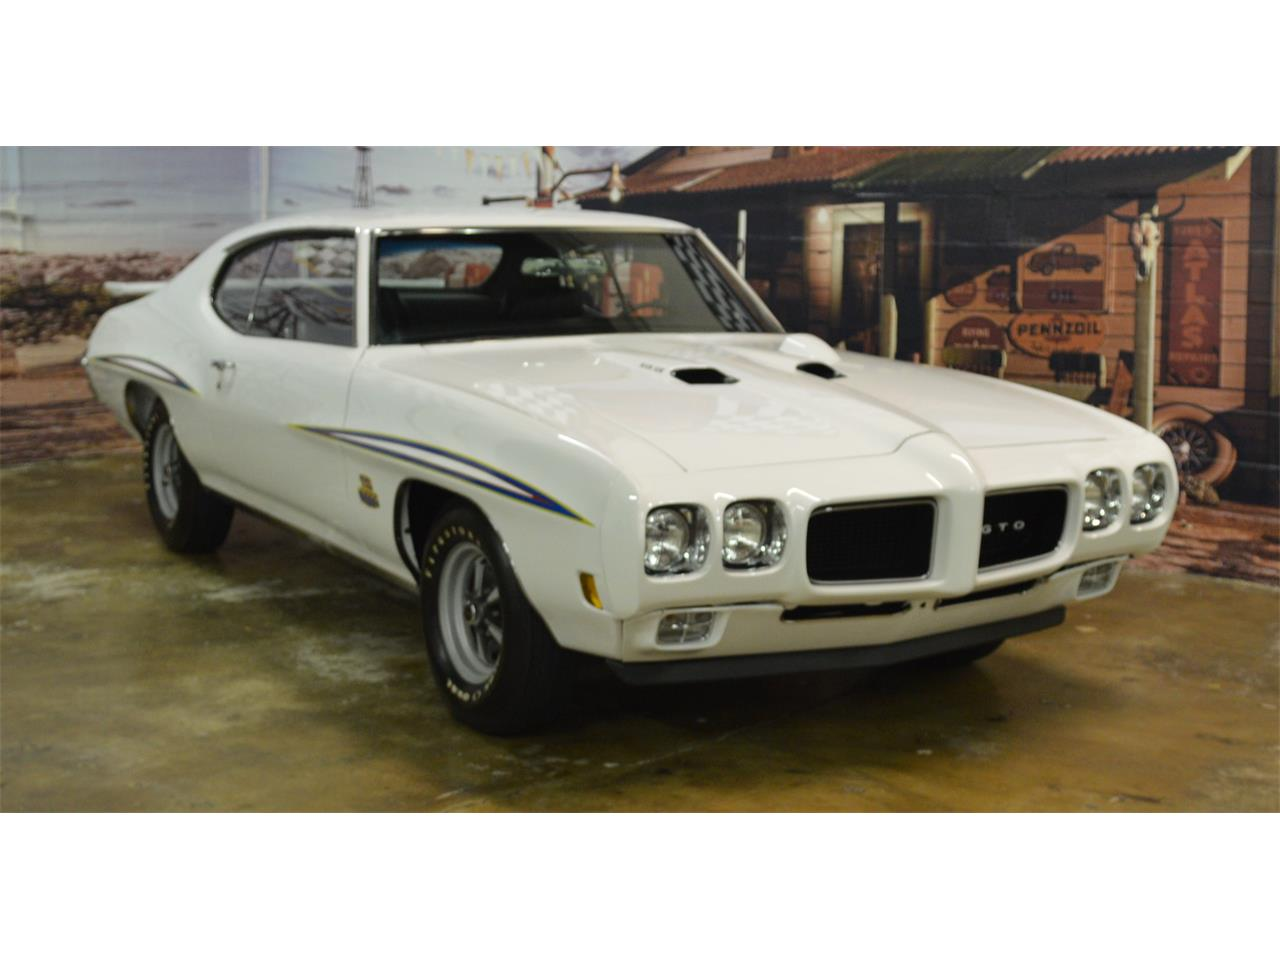 Large Picture of '70 Pontiac GTO (The Judge) Offered by L.R.A. Enterprises Auto Museum & Sales - KJ17